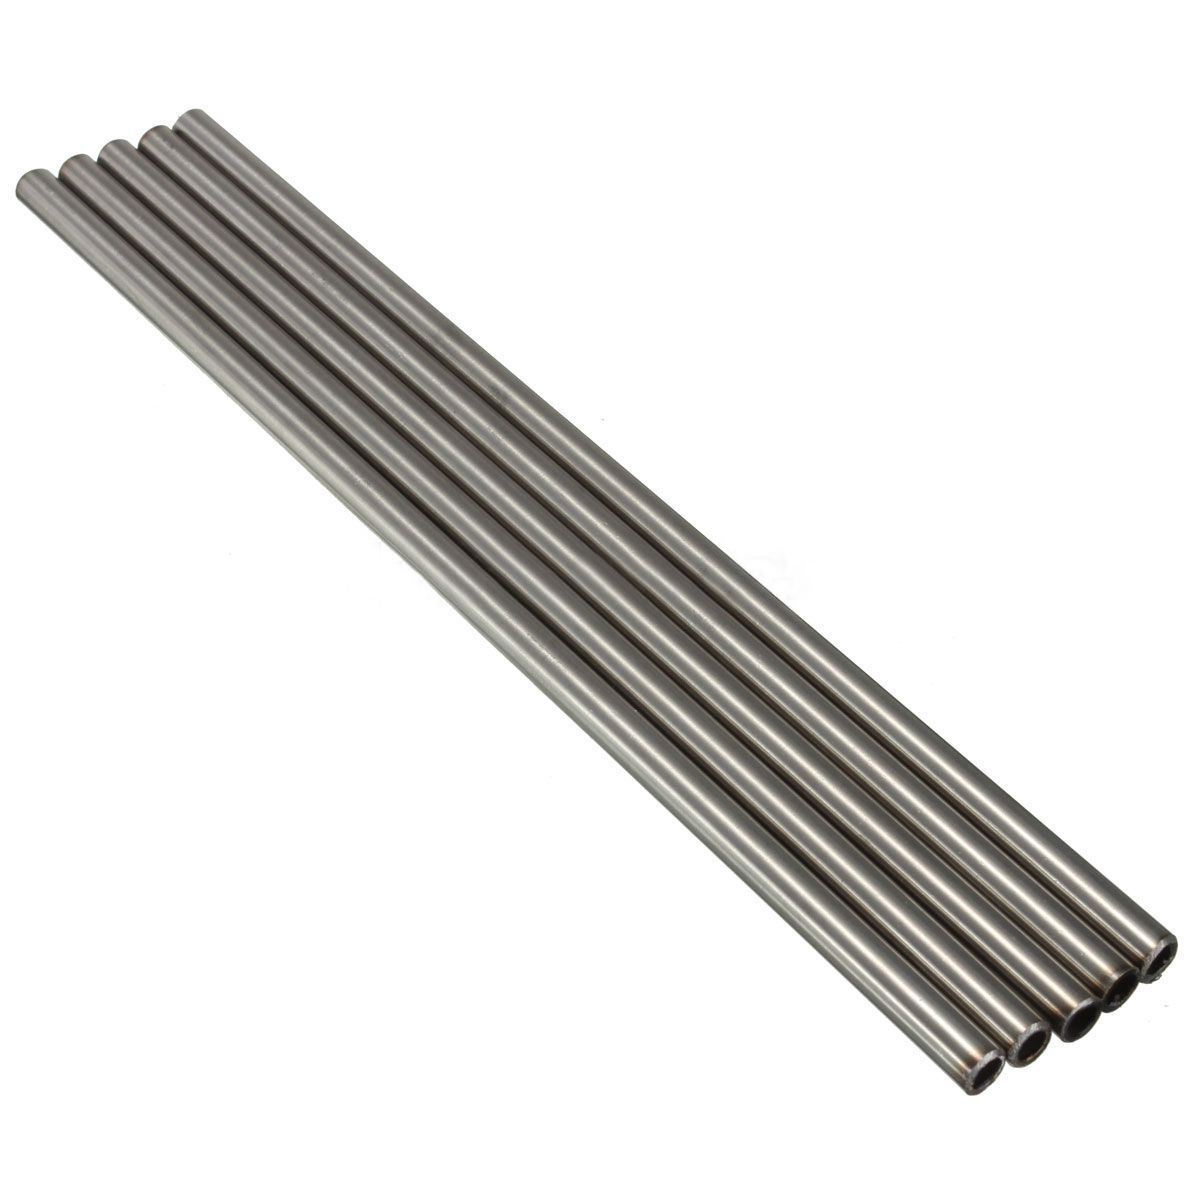 1pc/2pcs Silver 304 Stainless Steel Capillary Tube Corrosion Resistant Rod Pipe Tool OD 8mm 6mm ID Length 250mm Mayitr 5pcs 304 stainless steel capillary tube 3mm od 2mm id 250mm length silver for hardware accessories